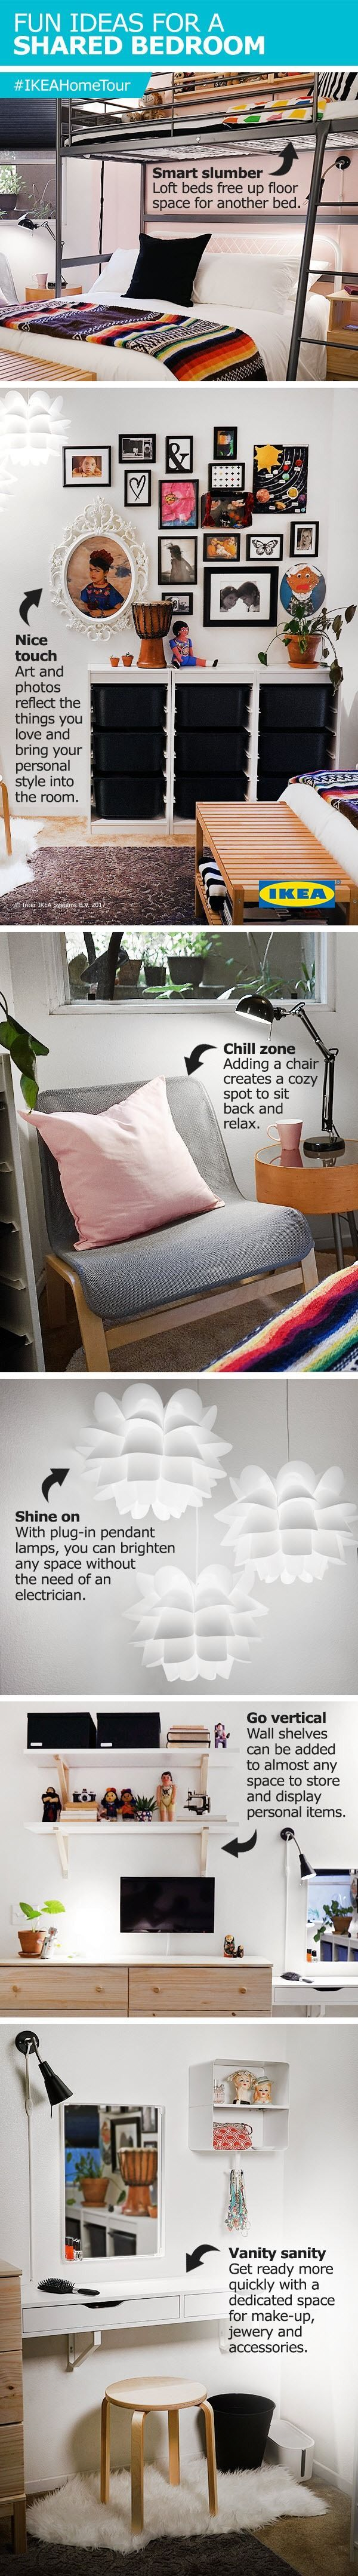 College loft bed ideas  Fun ideas for a bright and functional shared bedroom from the IKEA